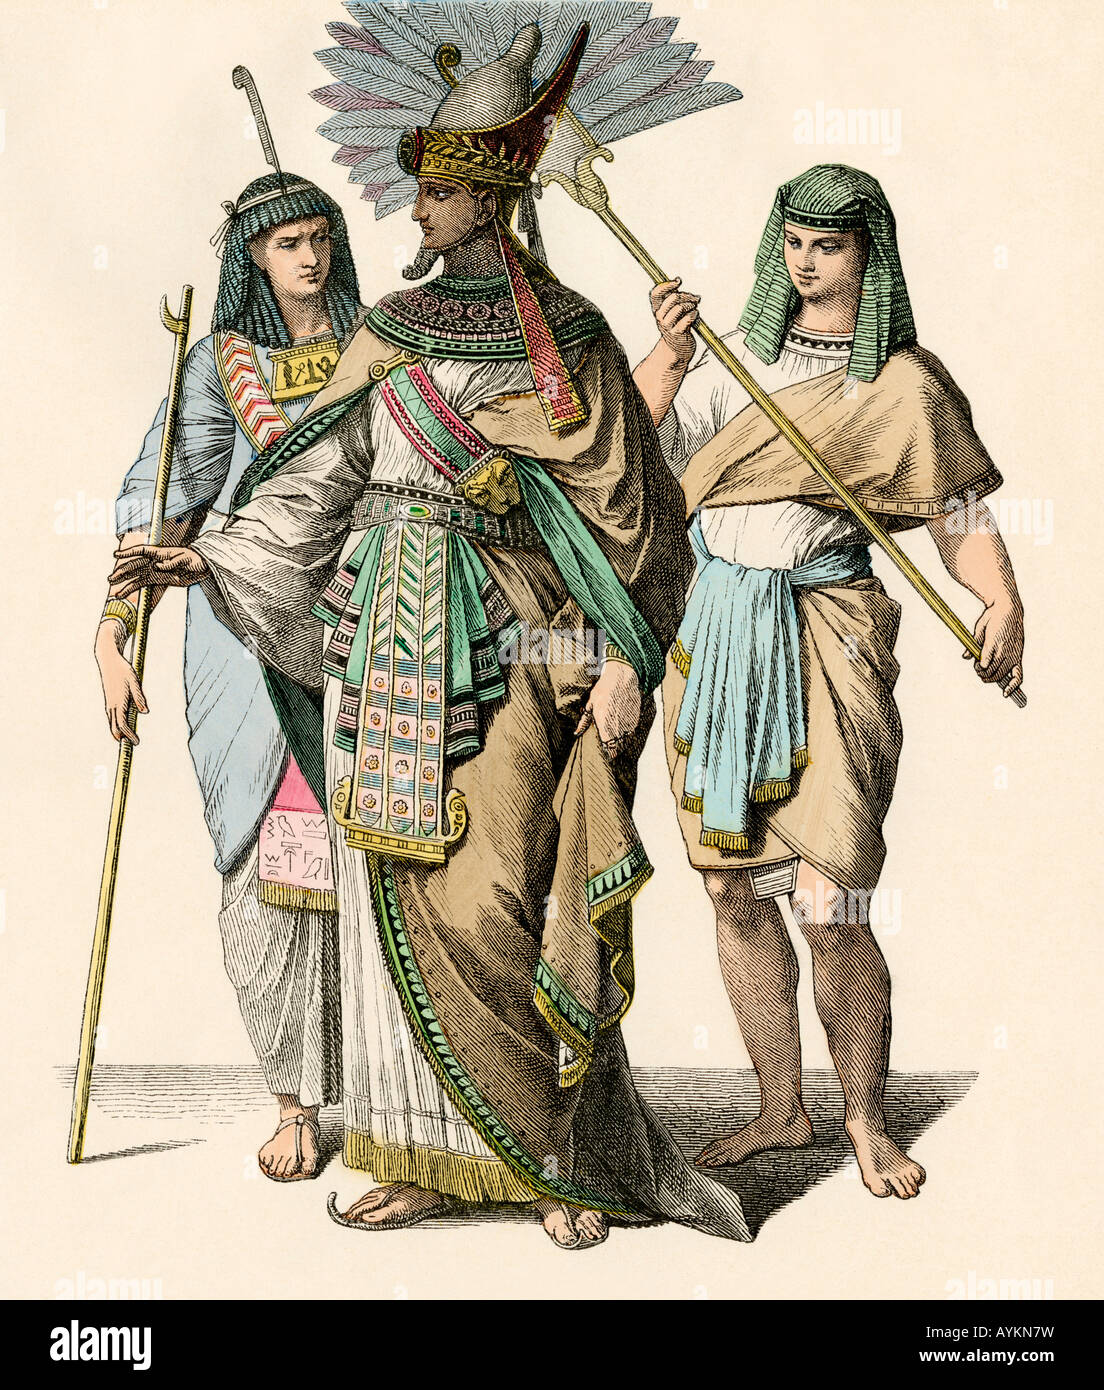 Egyptian pharaoh with a court official and a fan-bearer. Hand-colored print - Stock Image